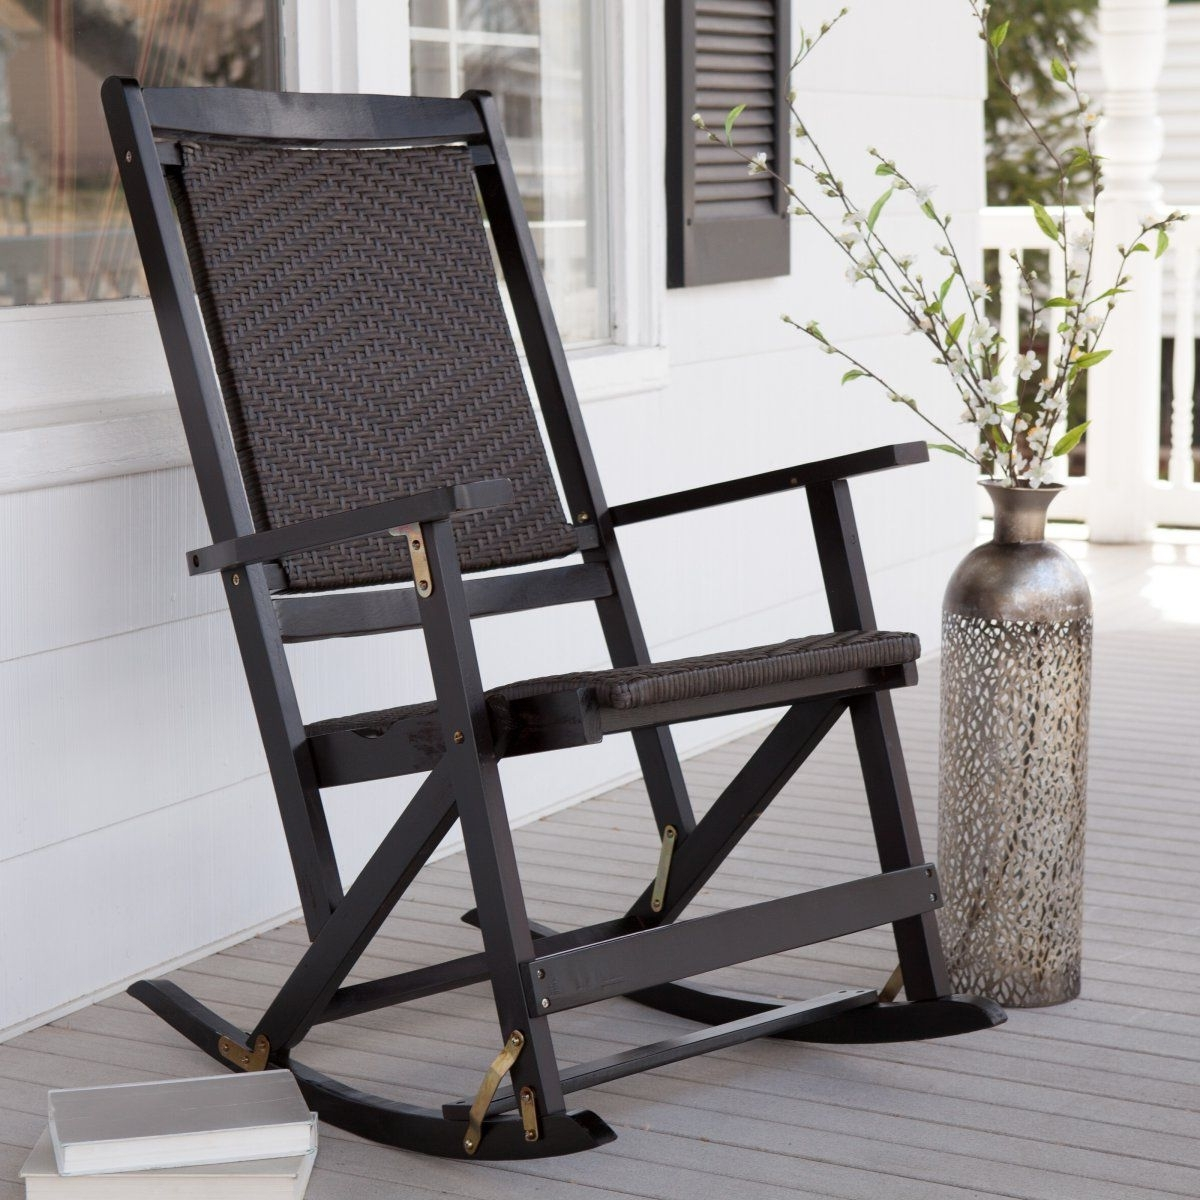 Favorite The Best How Grease Black Outdoor Rocking U Bed And Shower Picture Throughout Unique Outdoor Rocking Chairs (View 6 of 15)